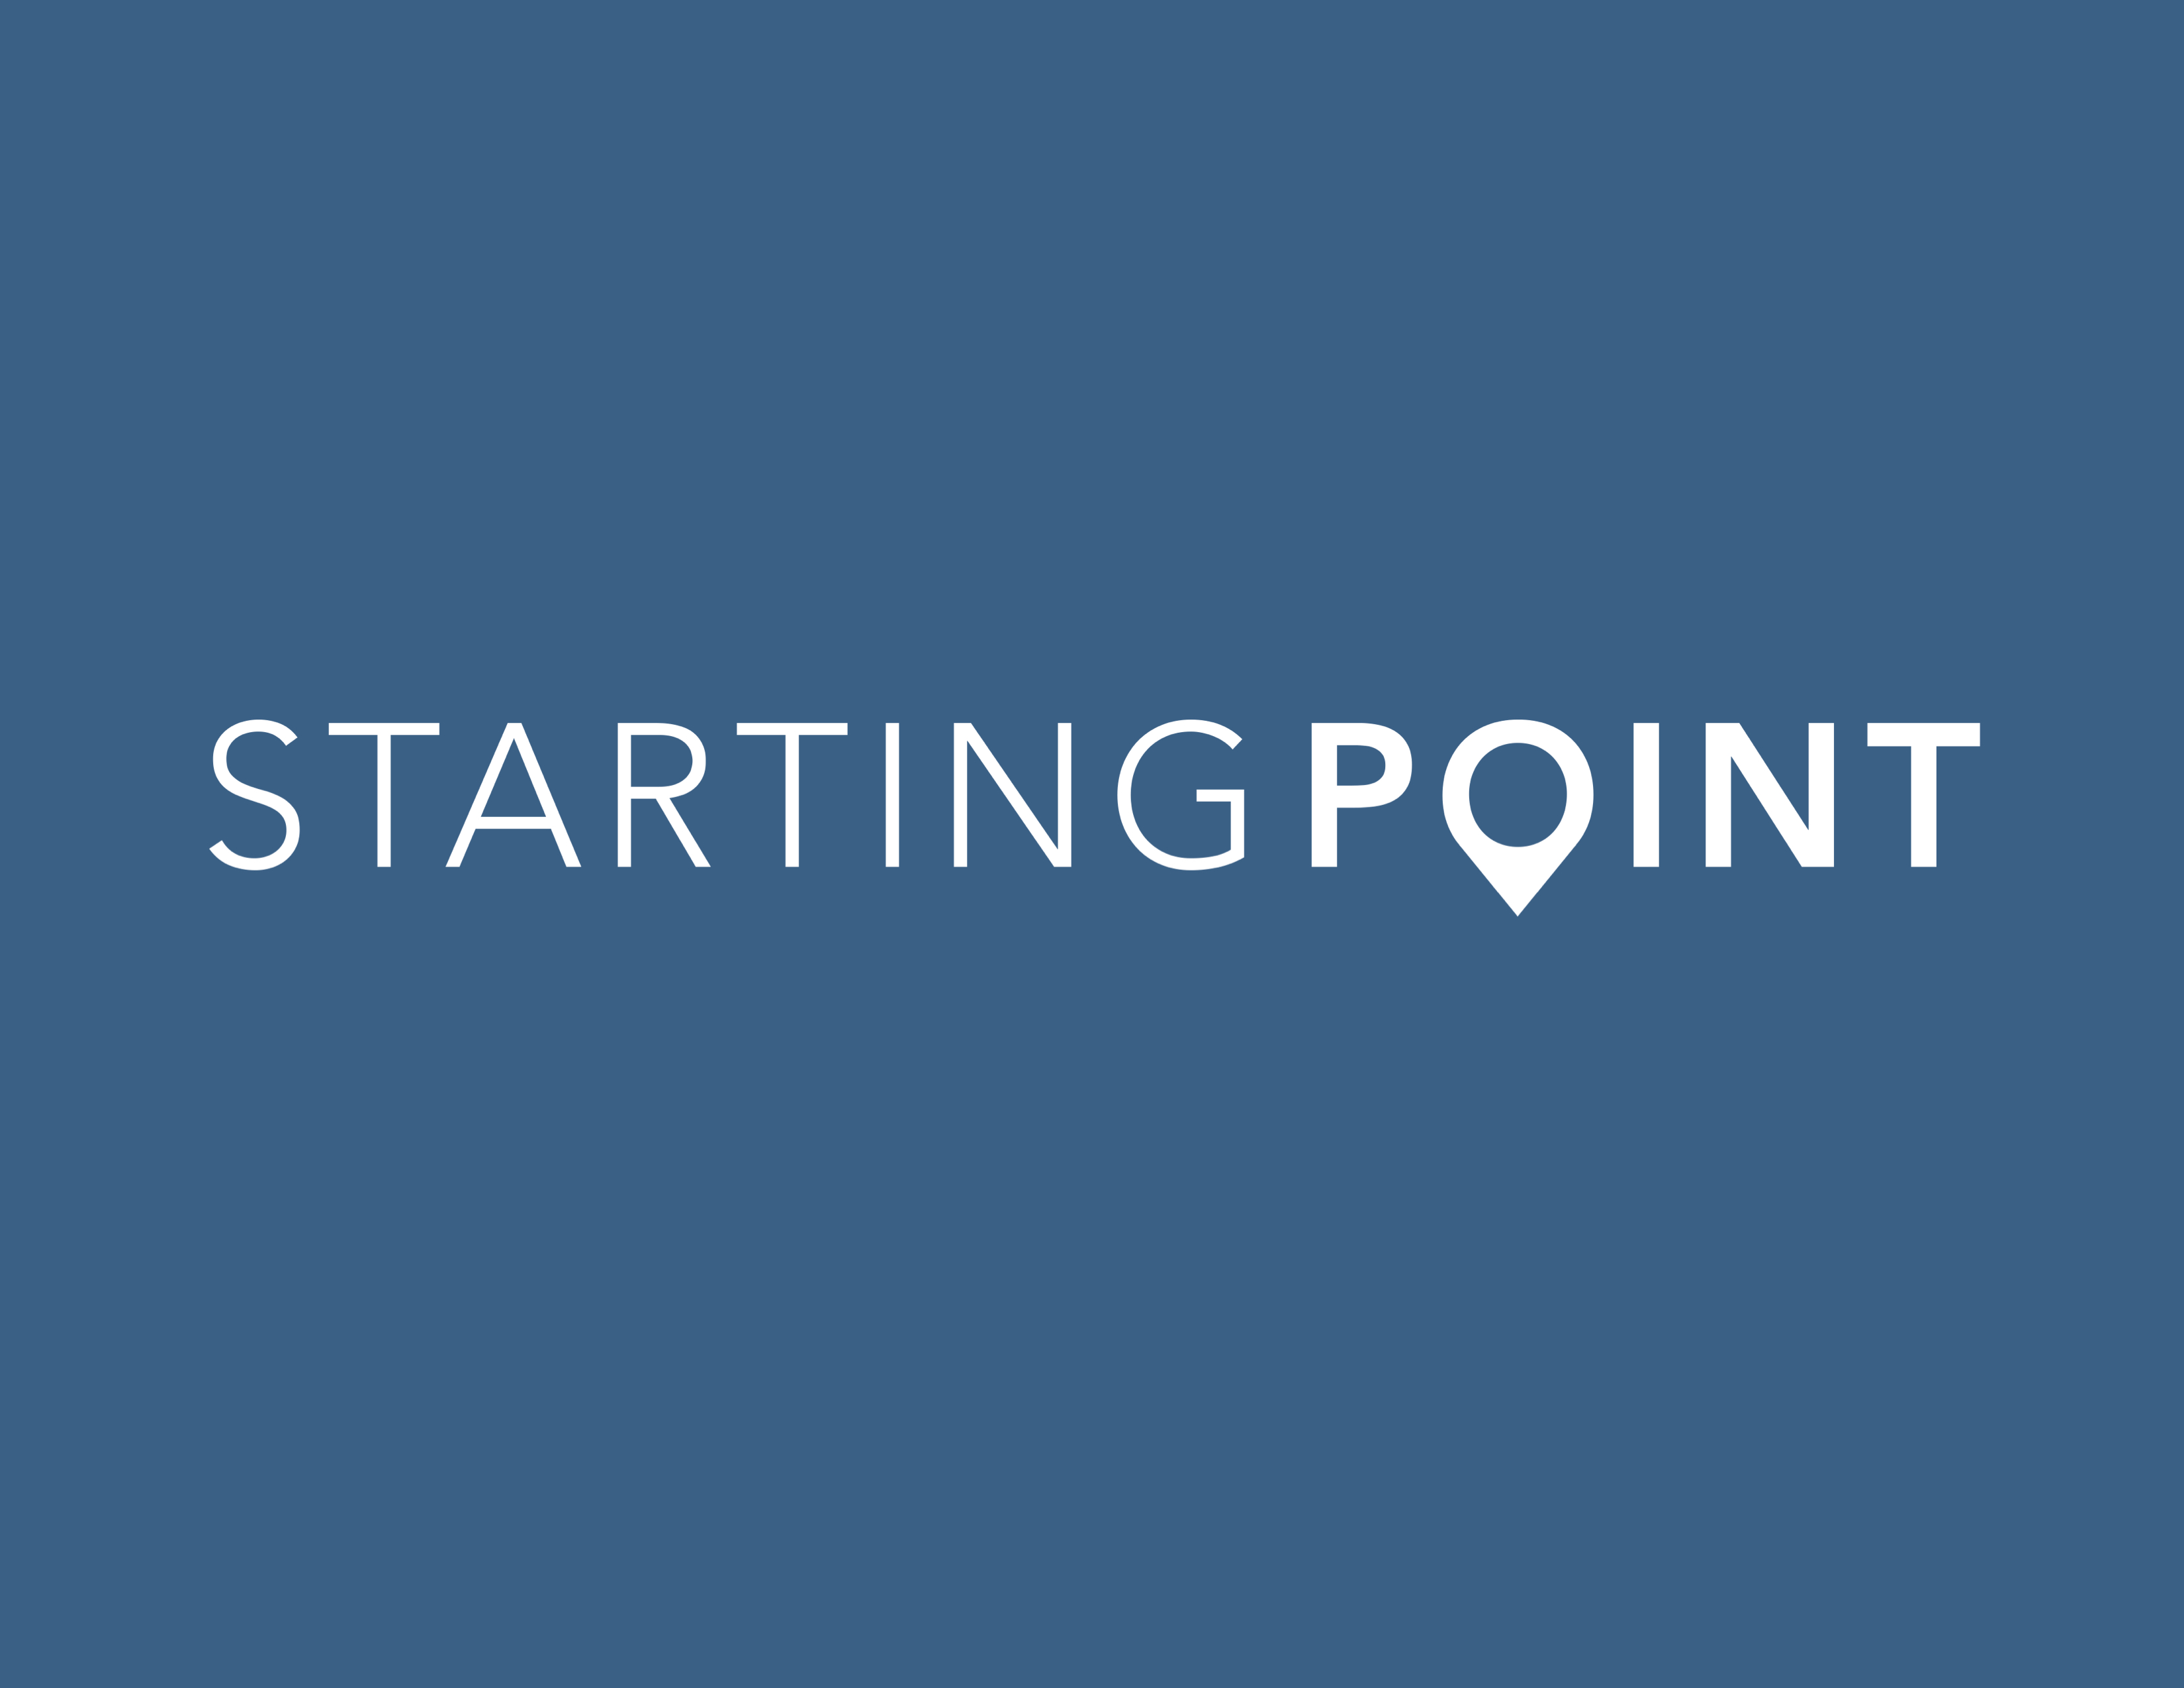 Starting point tv sign